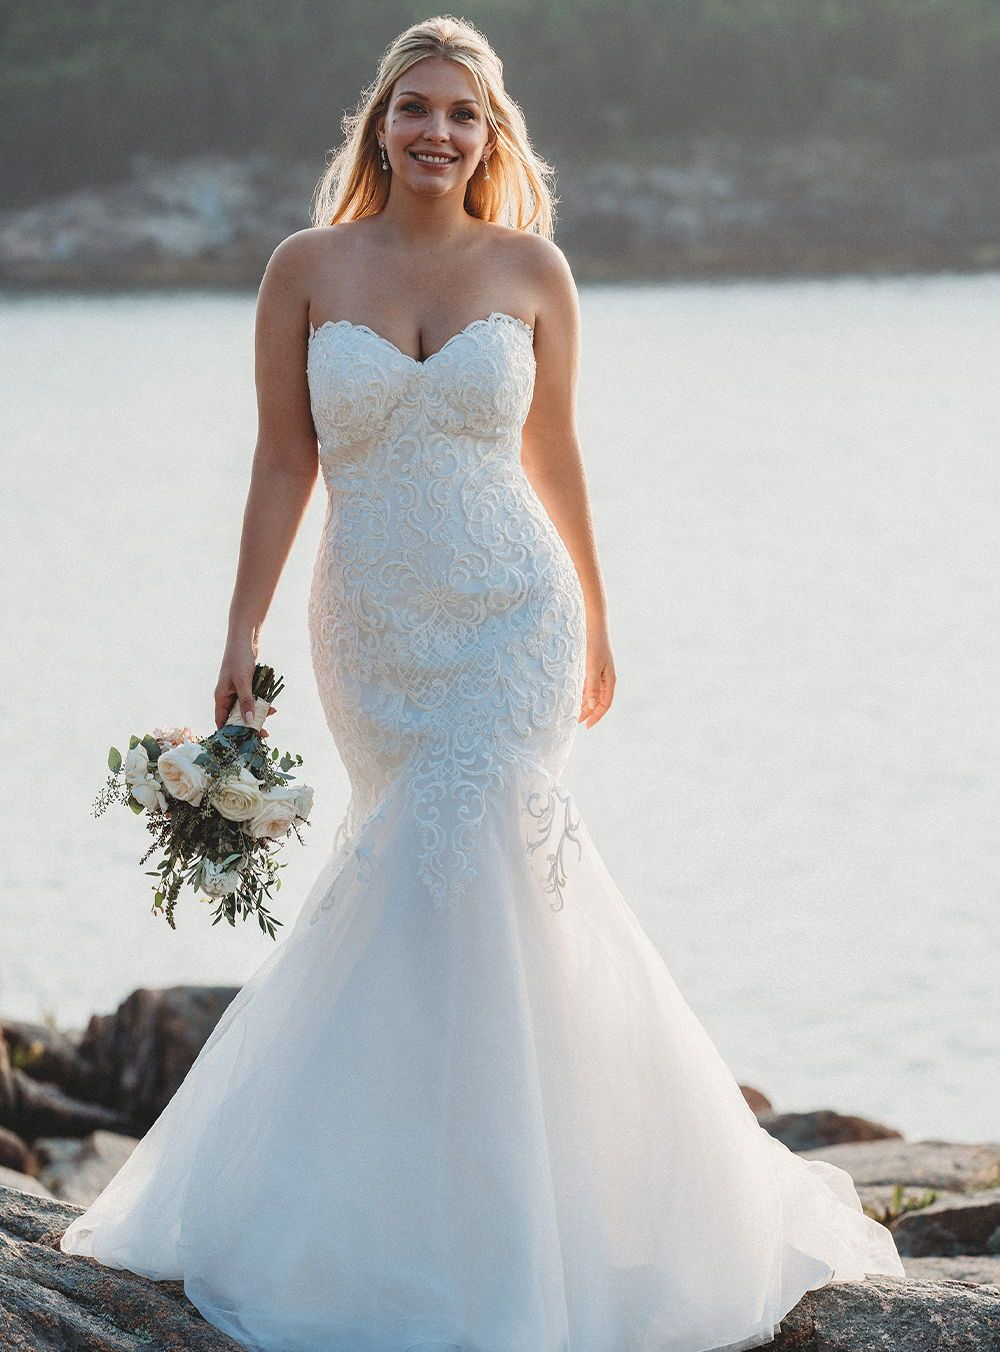 Bridal in 2020 Allure bridal, Plus size wedding gowns